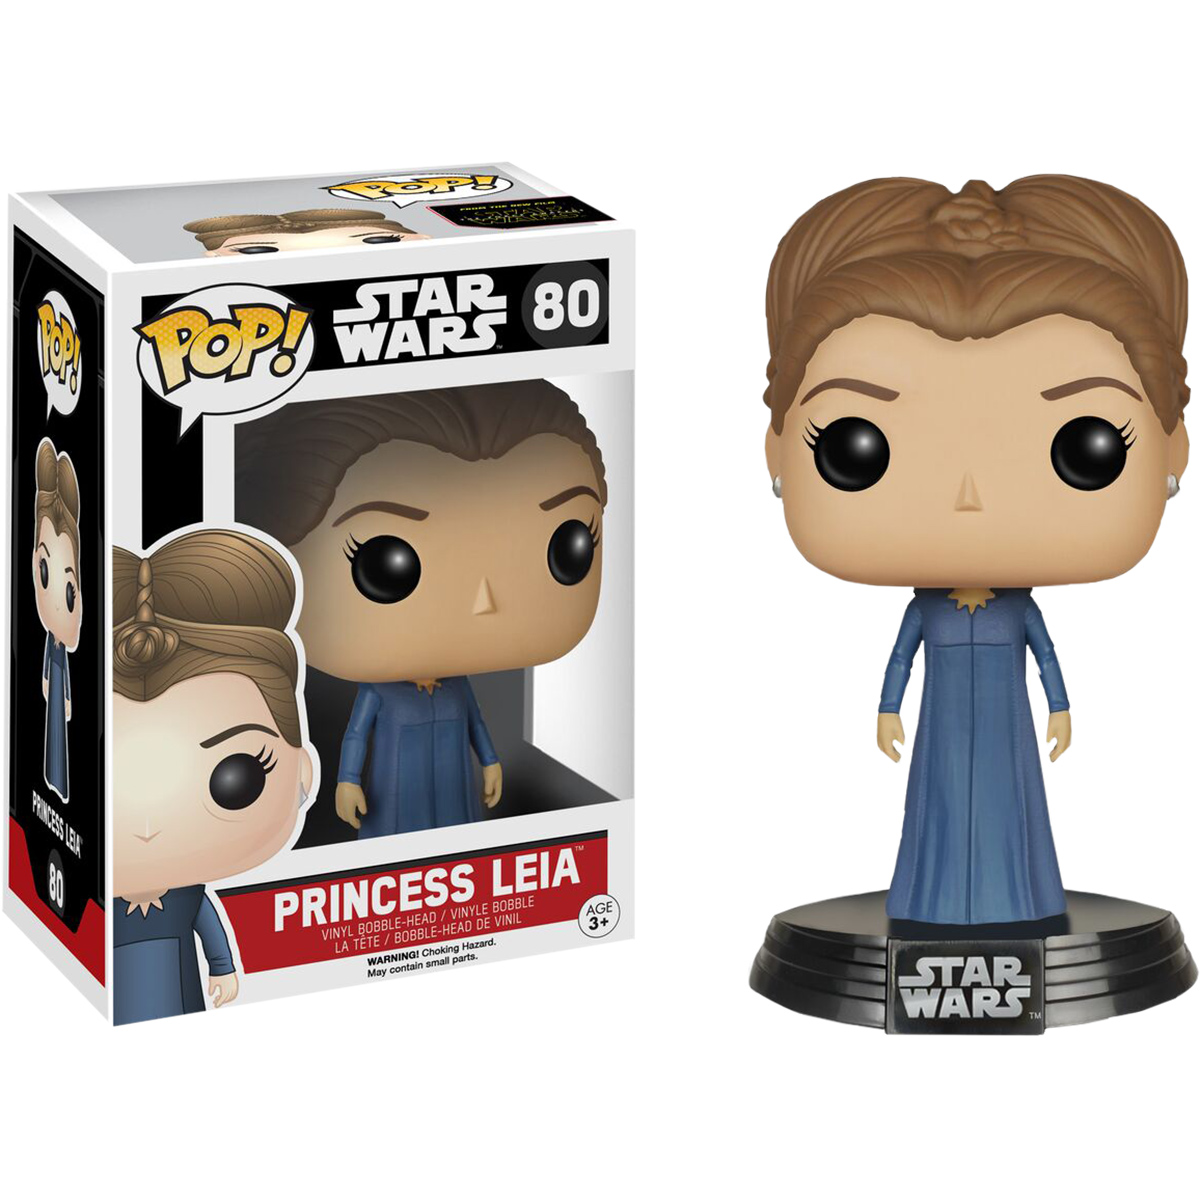 funko star wars ep7 princess leia pop vinyl figure at hobby warehouse. Black Bedroom Furniture Sets. Home Design Ideas